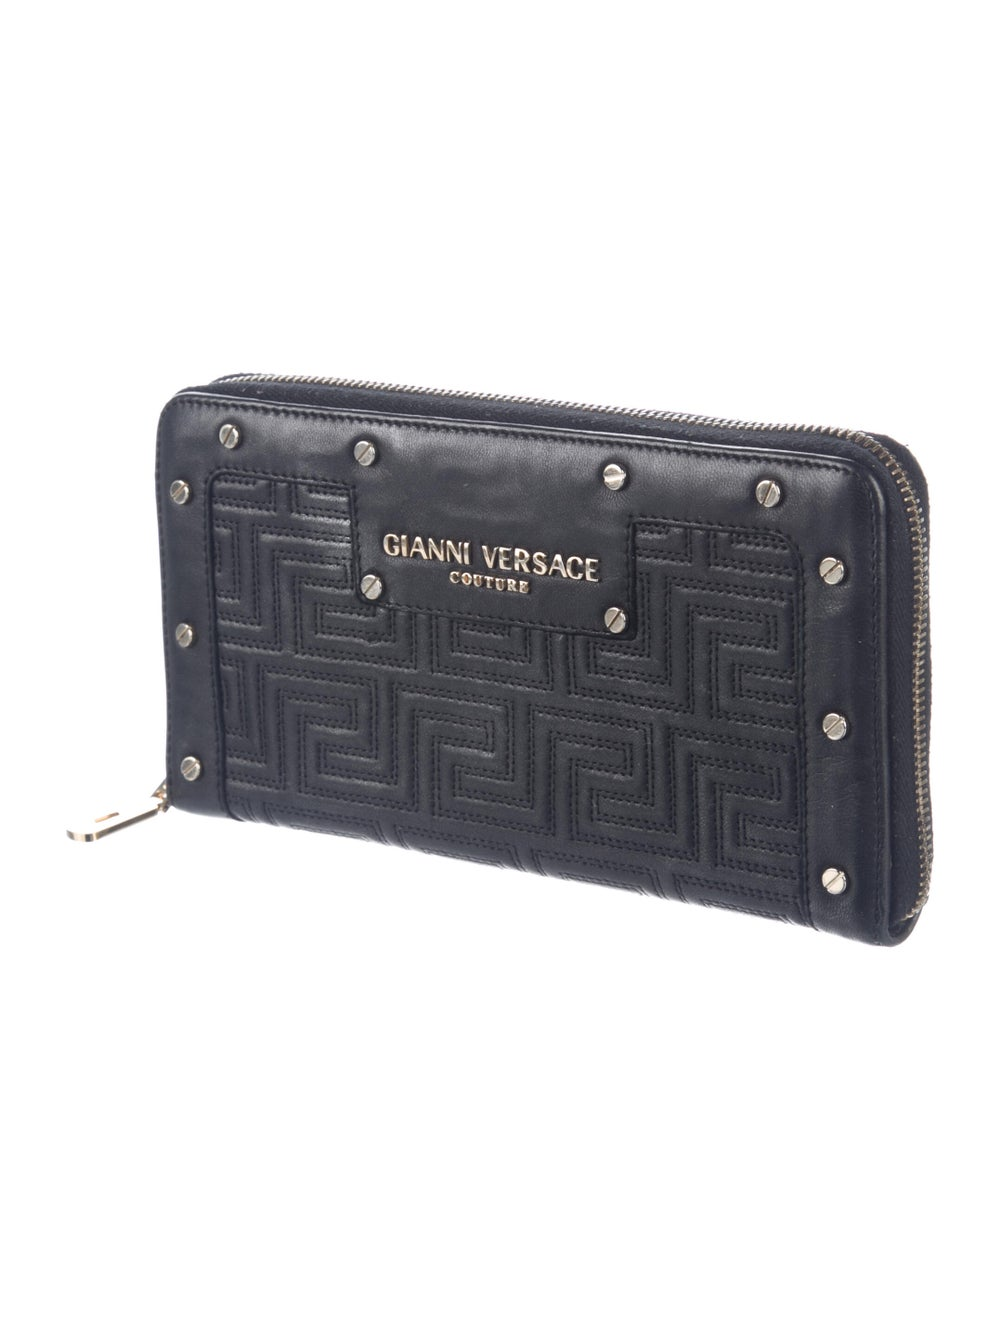 Gianni Versace Leather Continental Wallet Black - image 3